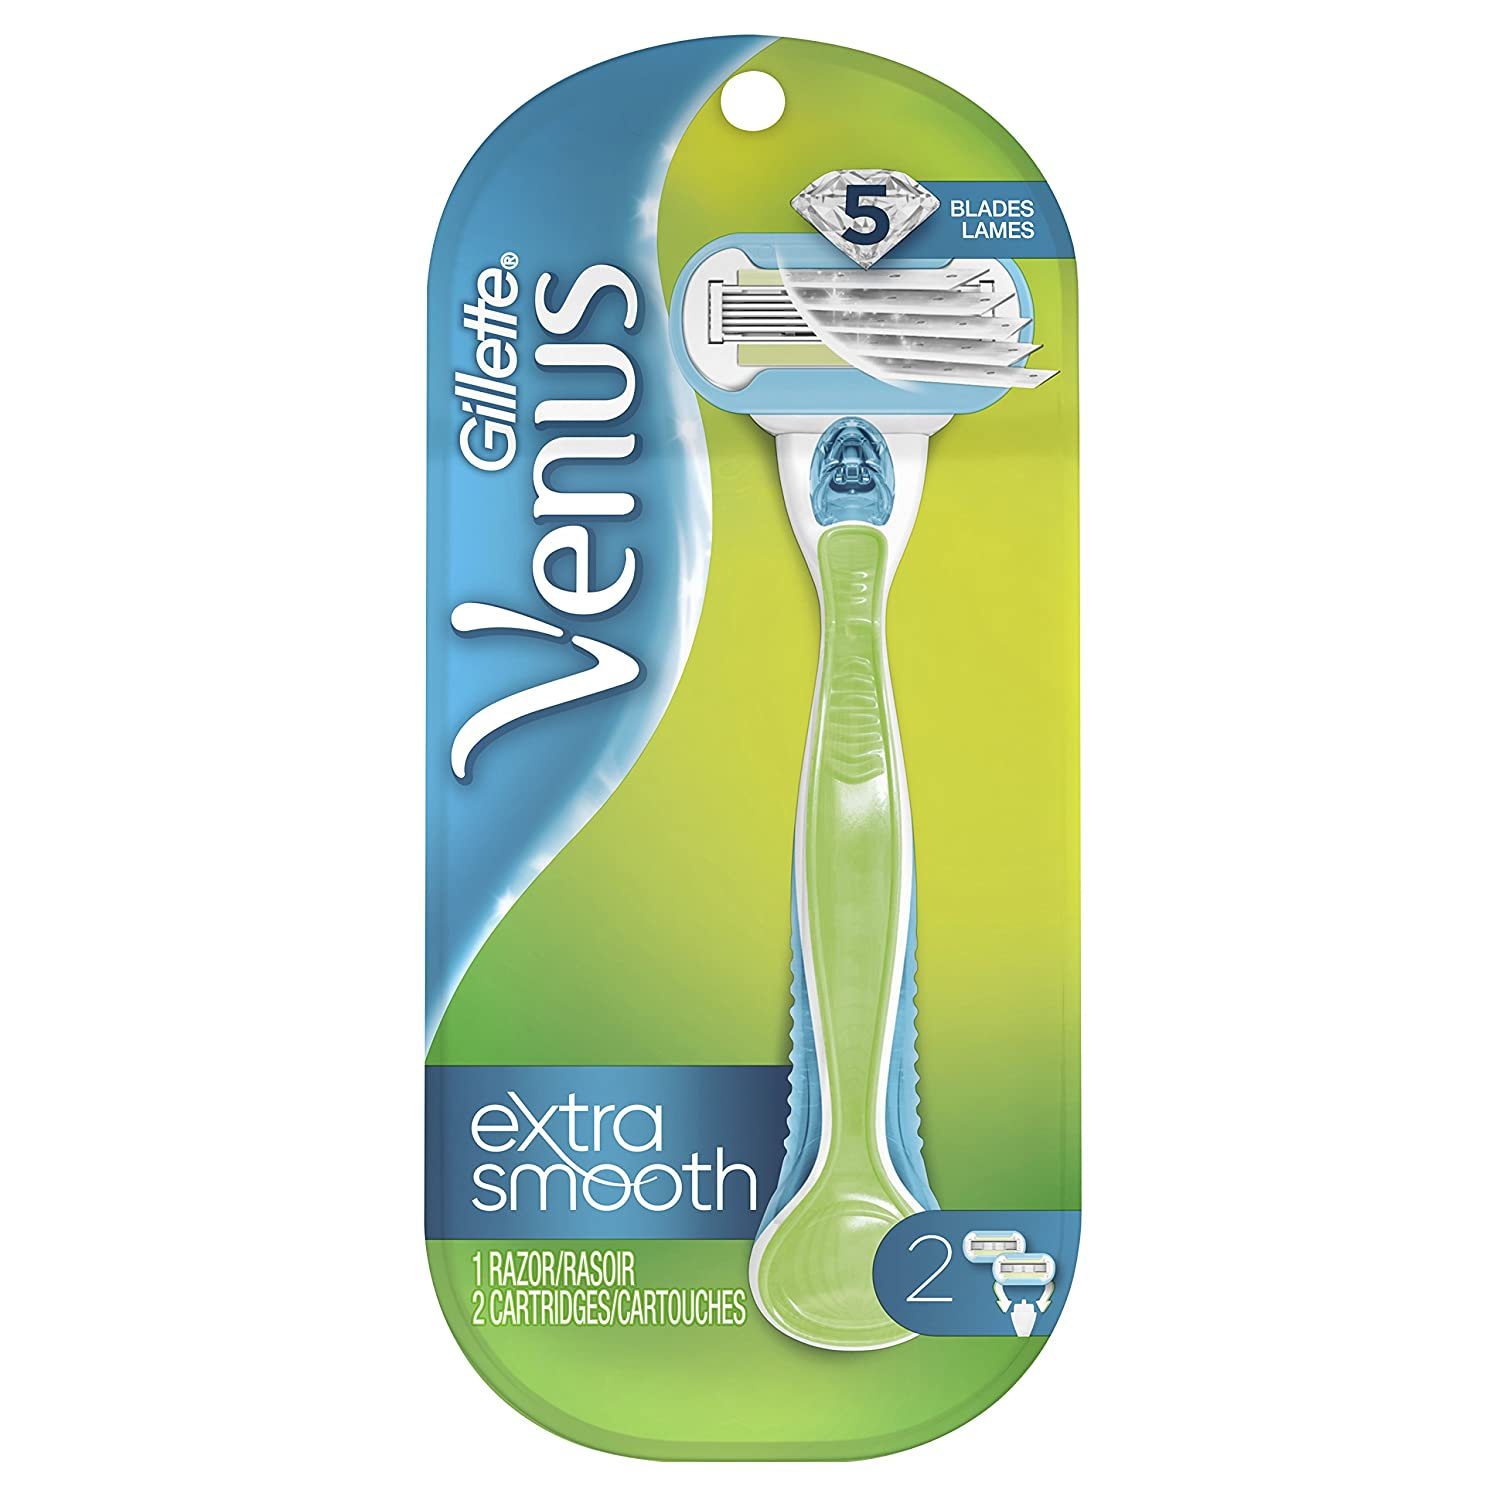 Gillette Venus Embrace Women's Razor 1 Razor Handle and 2 Razor Blade Refills 75031022